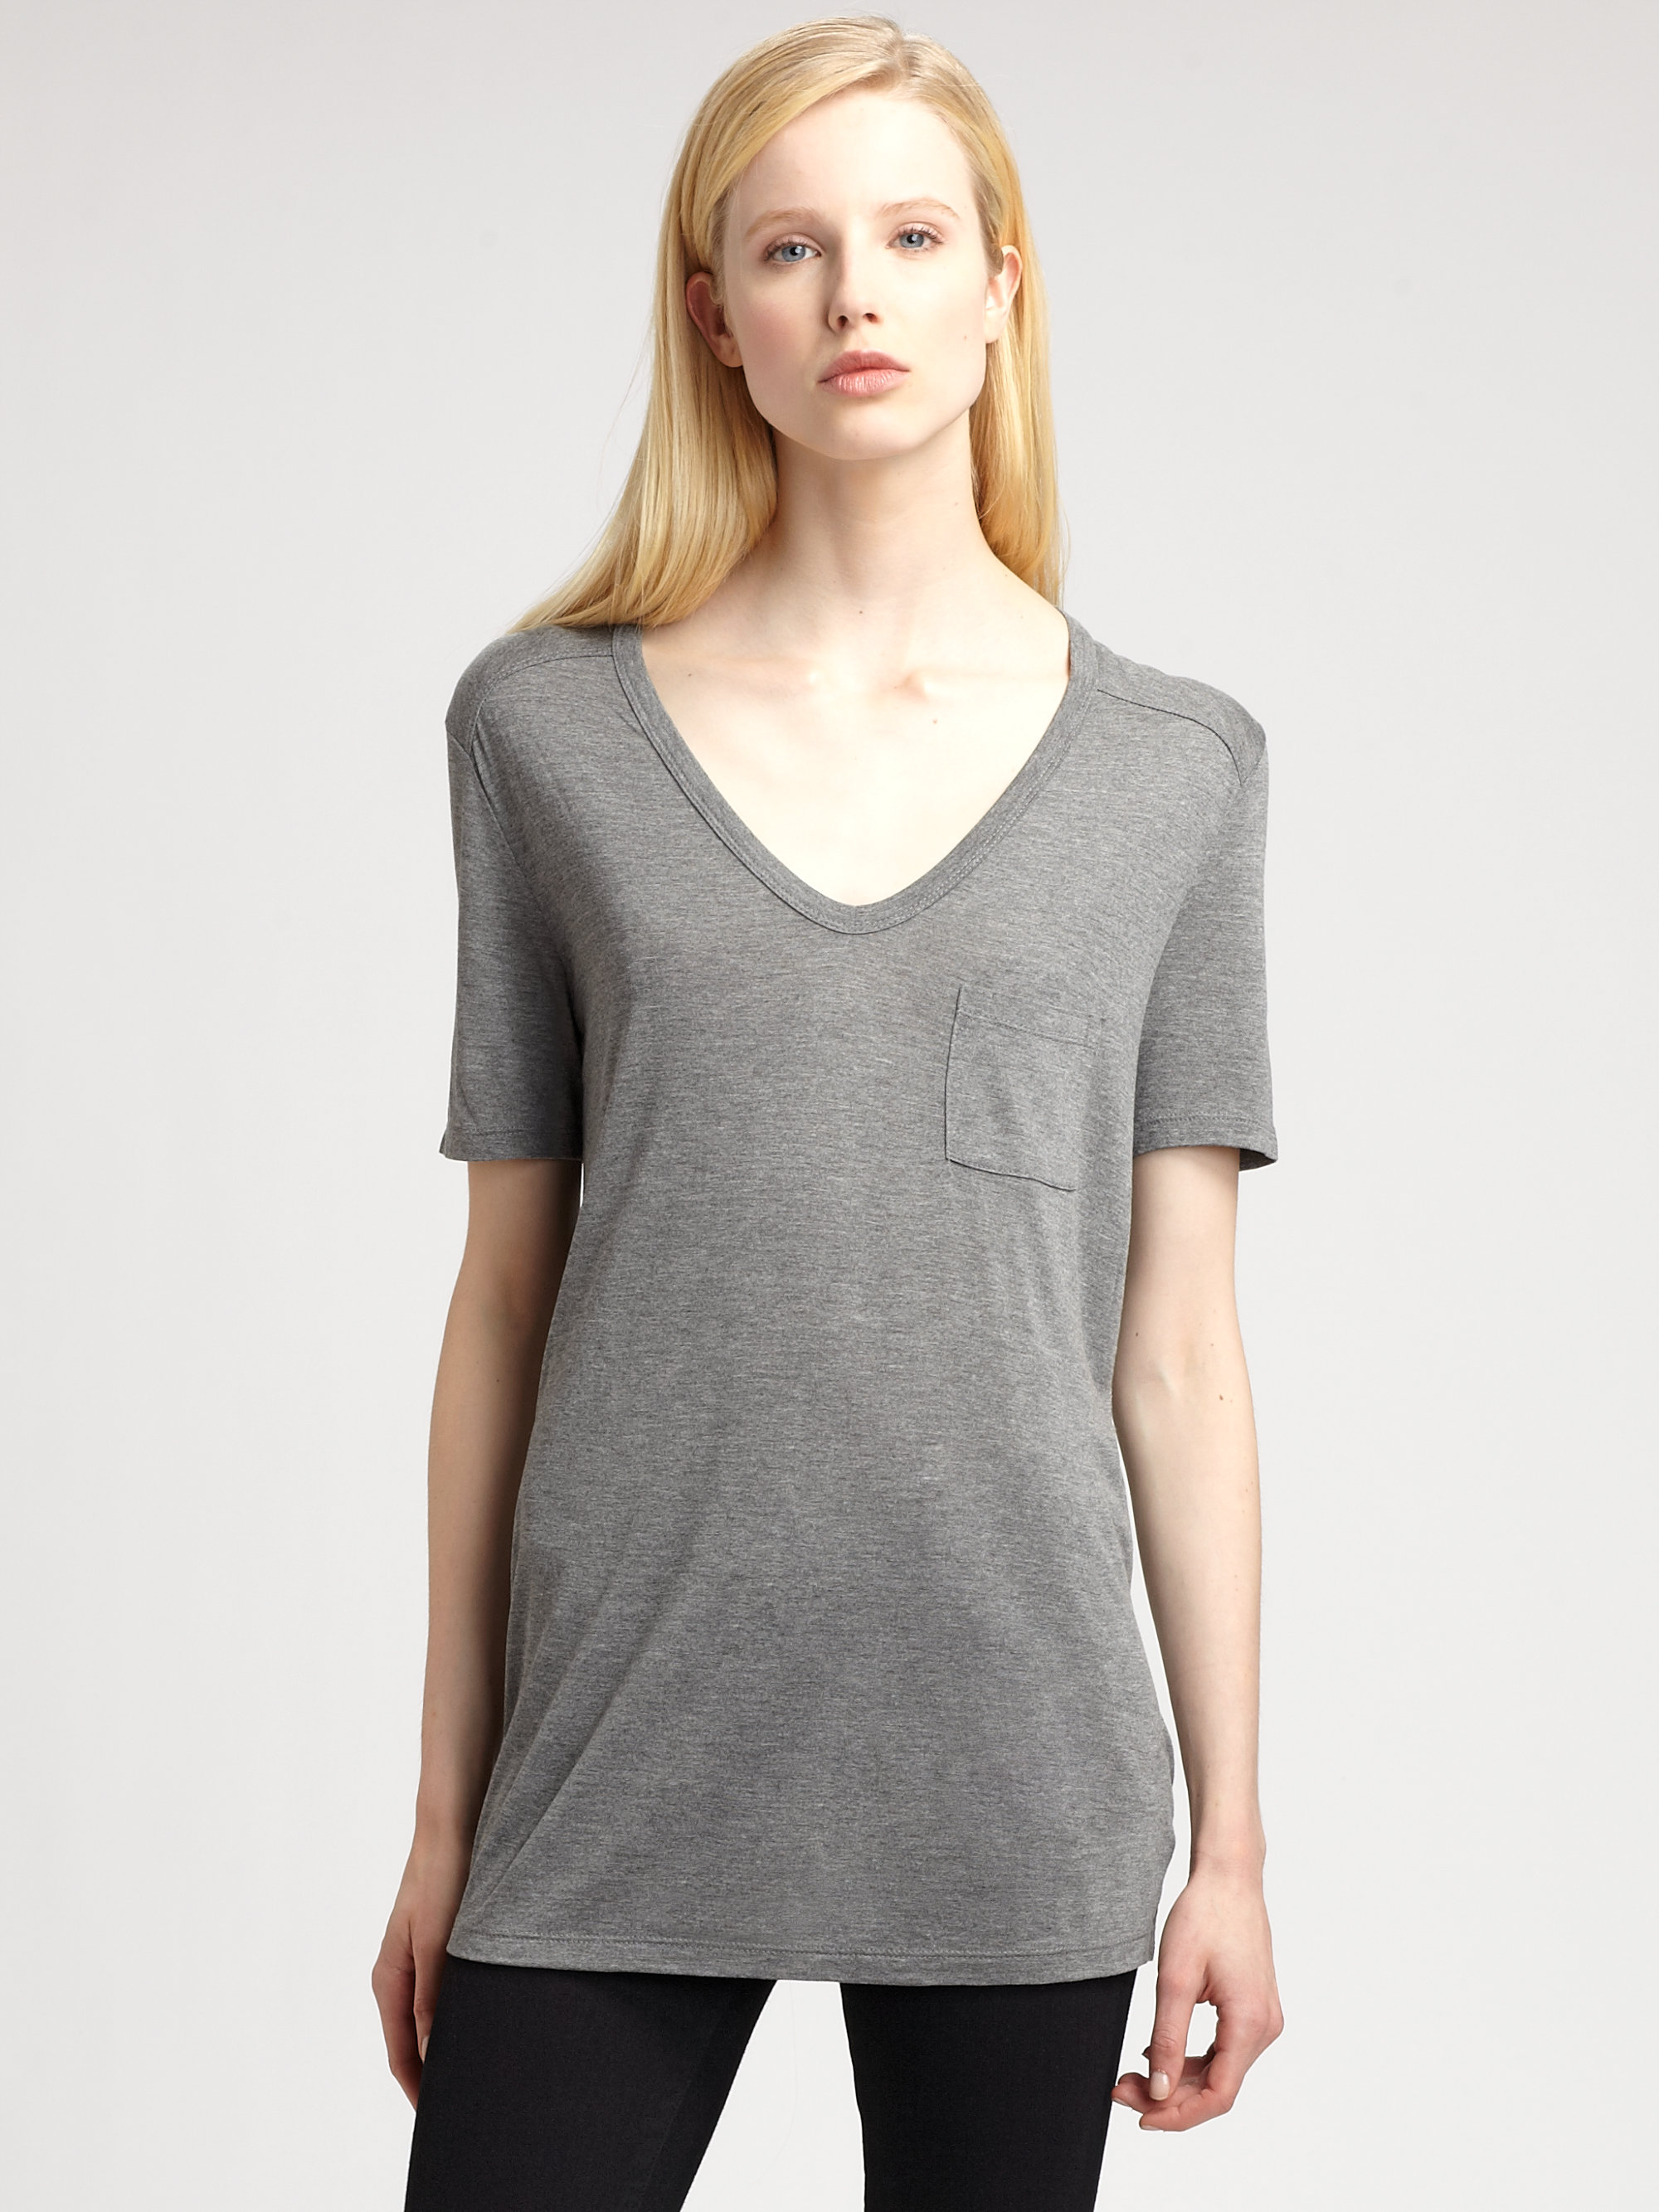 Lyst t by alexander wang classic pocket tee in gray for Alexander wang t shirts